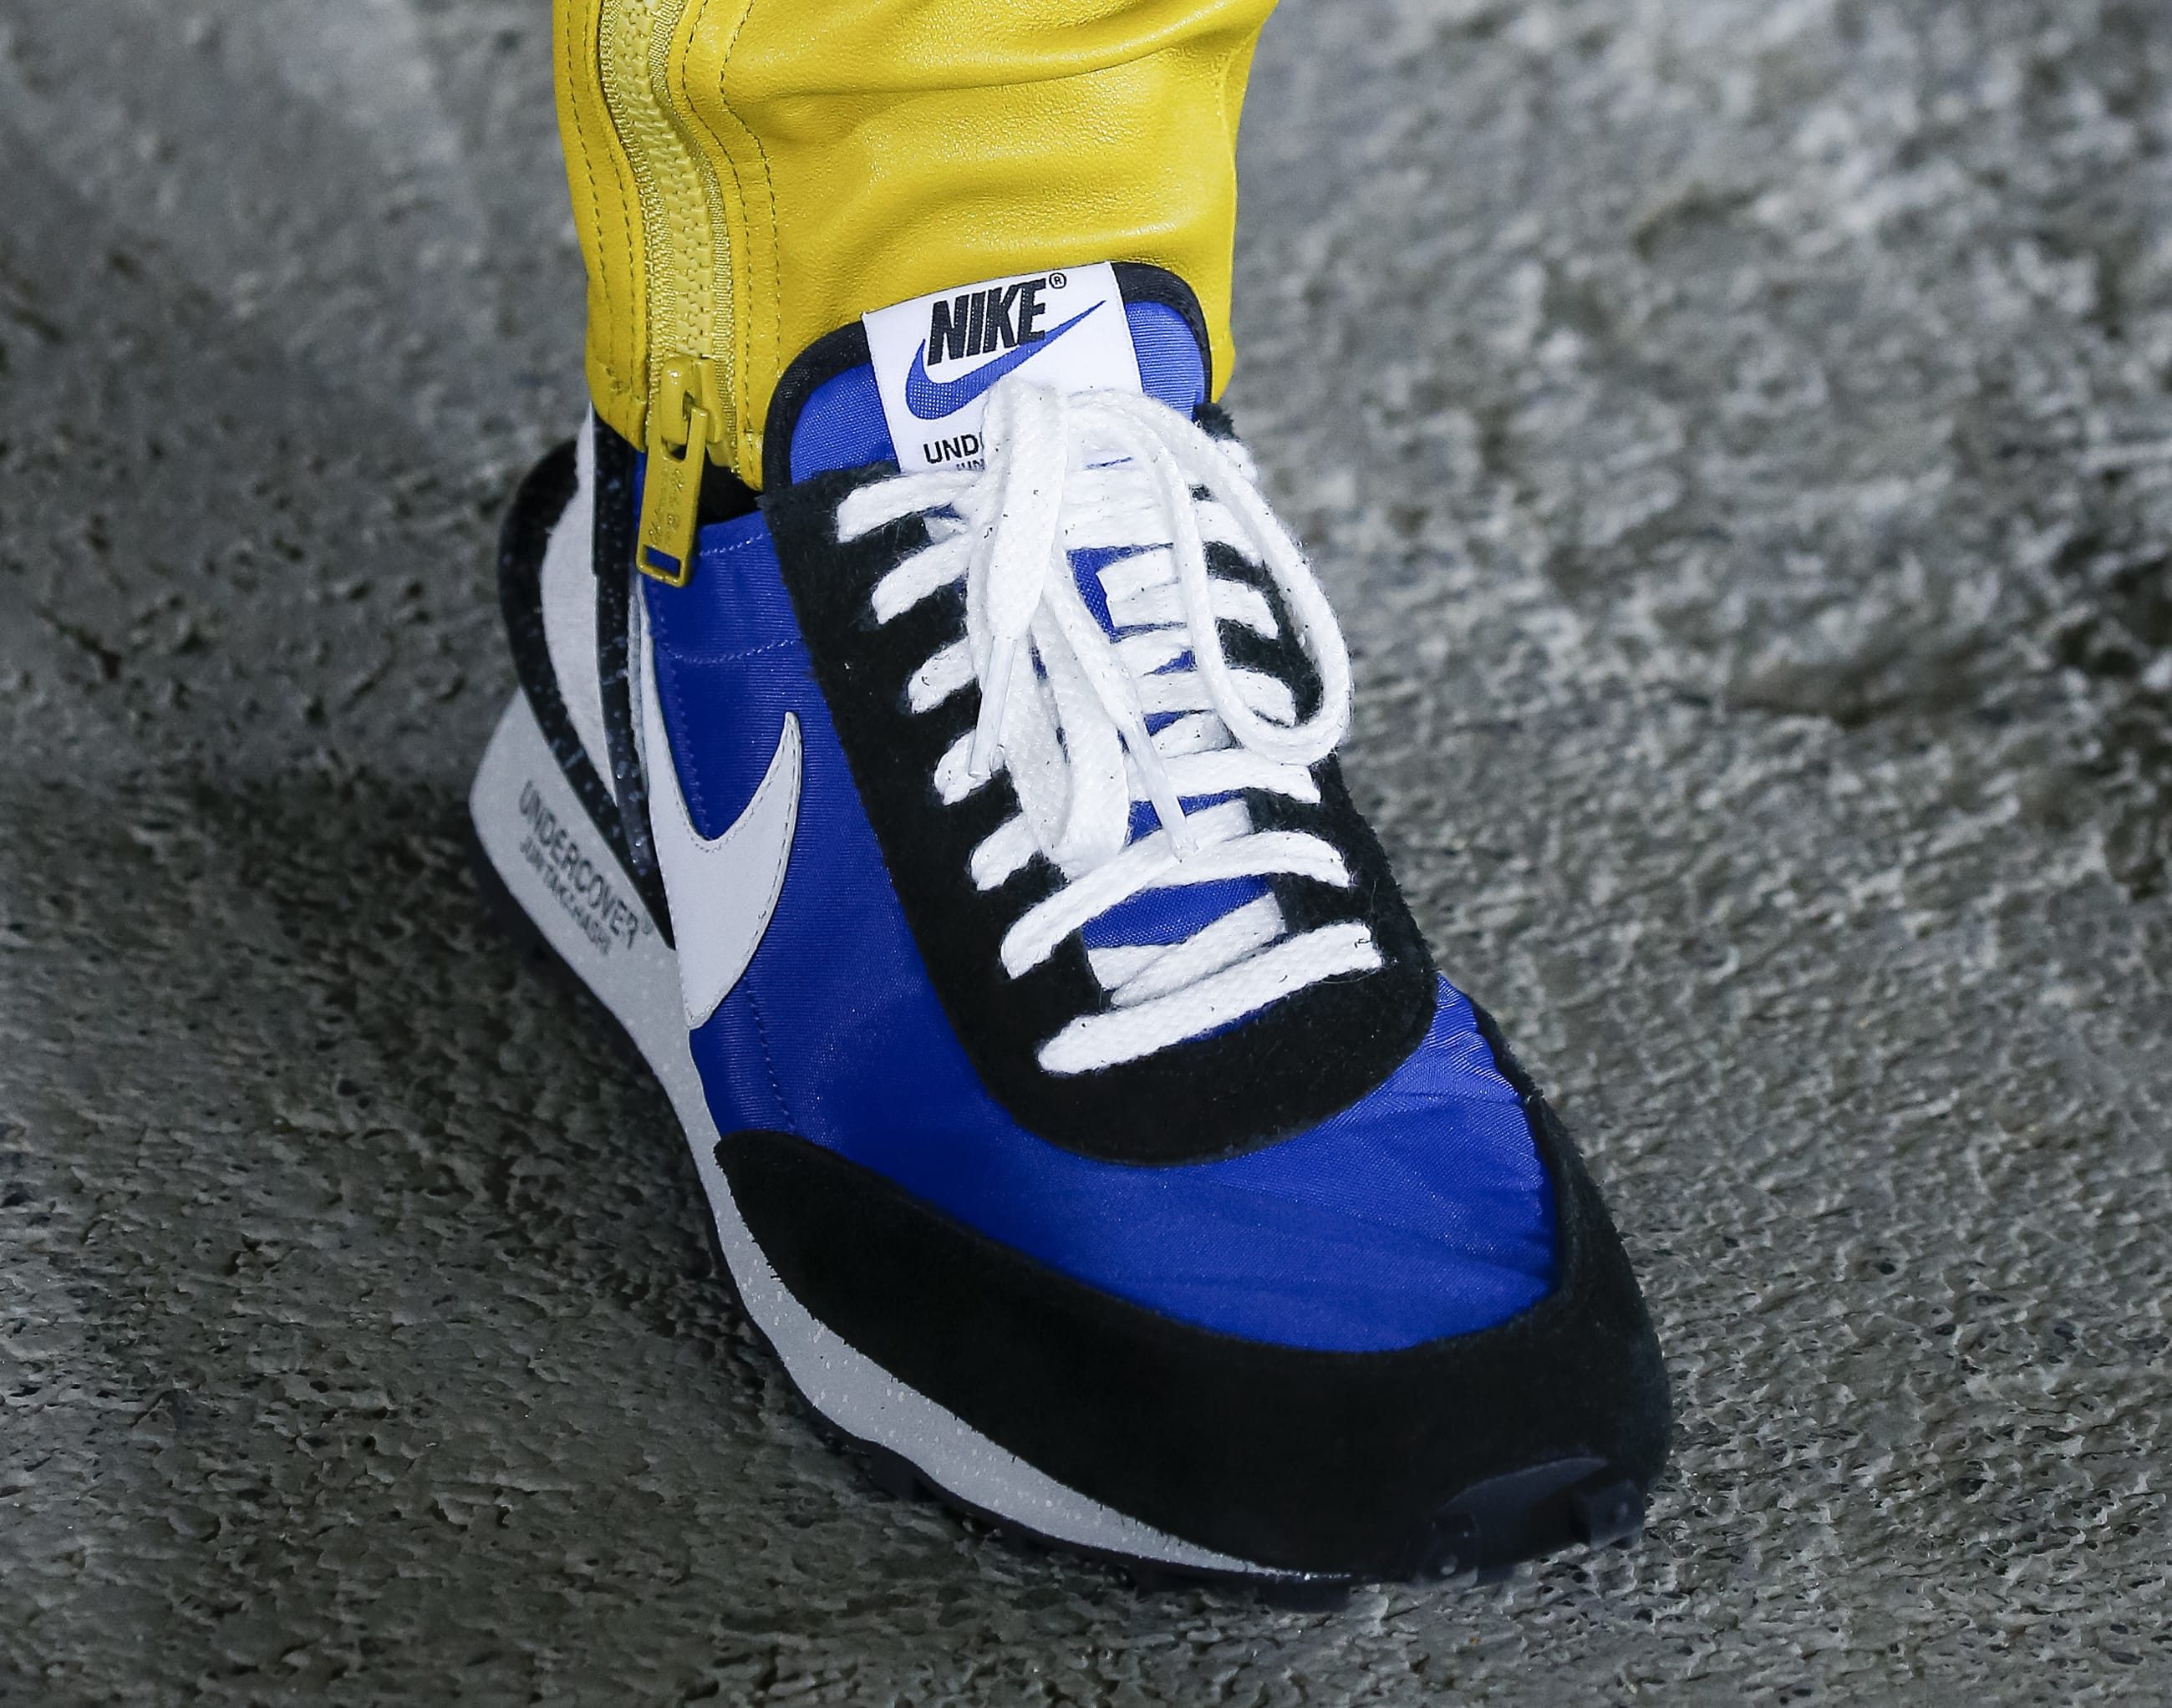 Undercover x Nike Paris Fashion Week Blue Low-Top (Front)